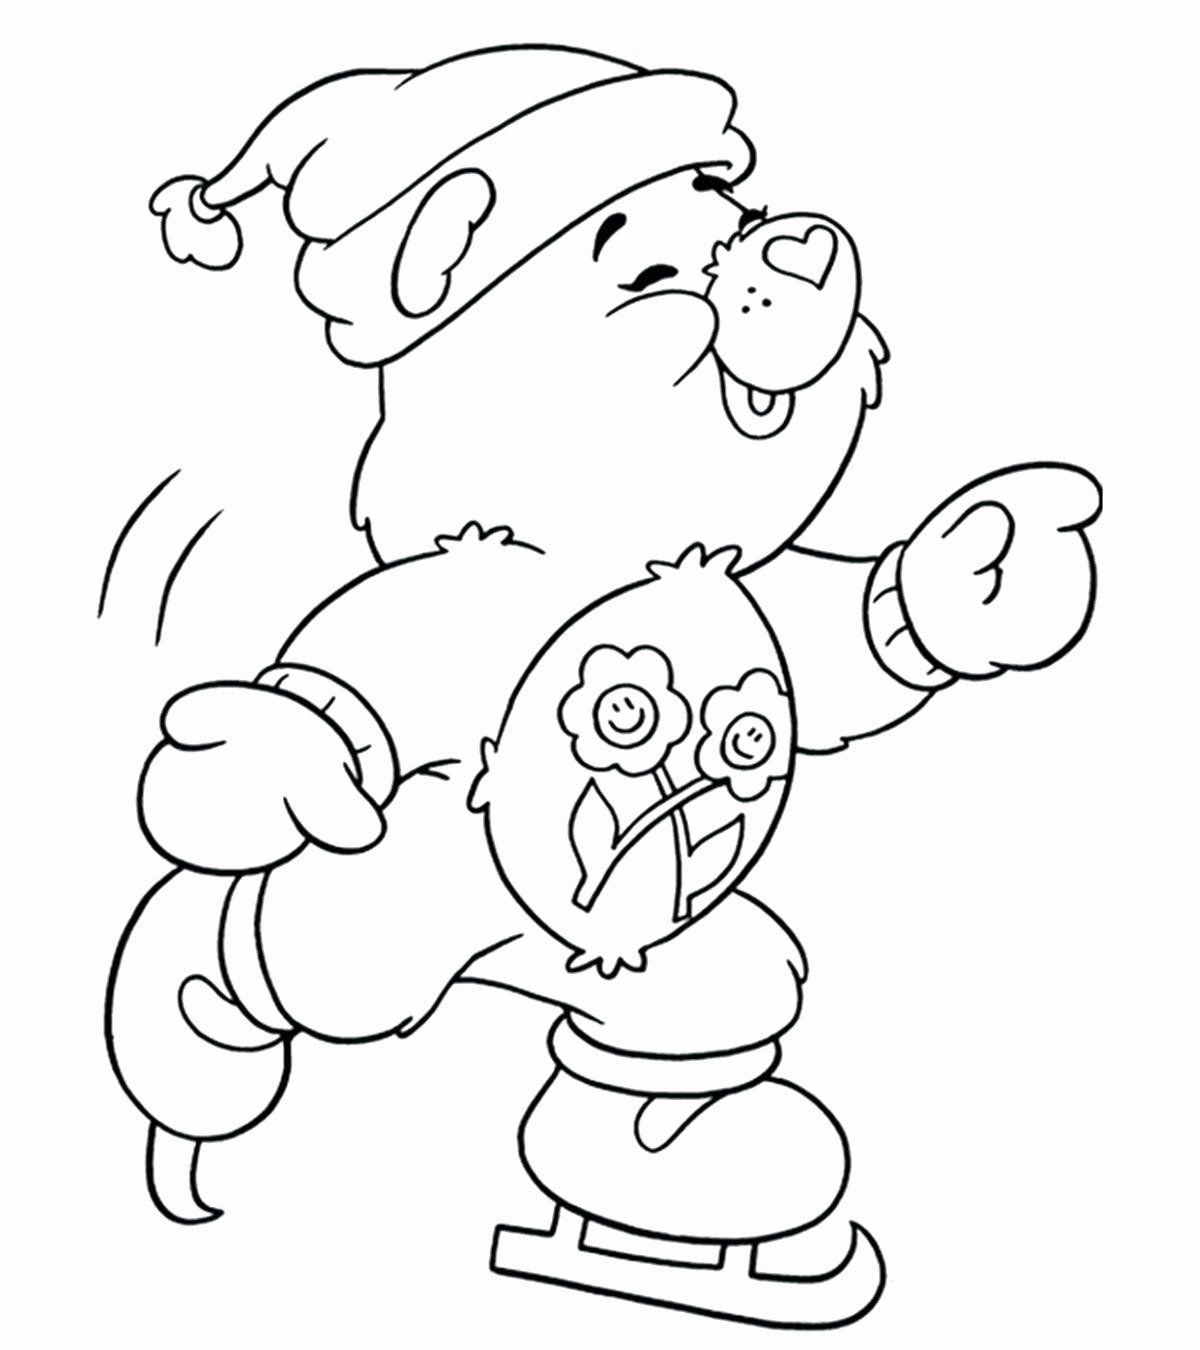 Winter Coloring Activities Unique Coloring Pages Seasons Weather Shoppage In 2020 Bear Coloring Pages Cartoon Coloring Pages Disney Coloring Pages